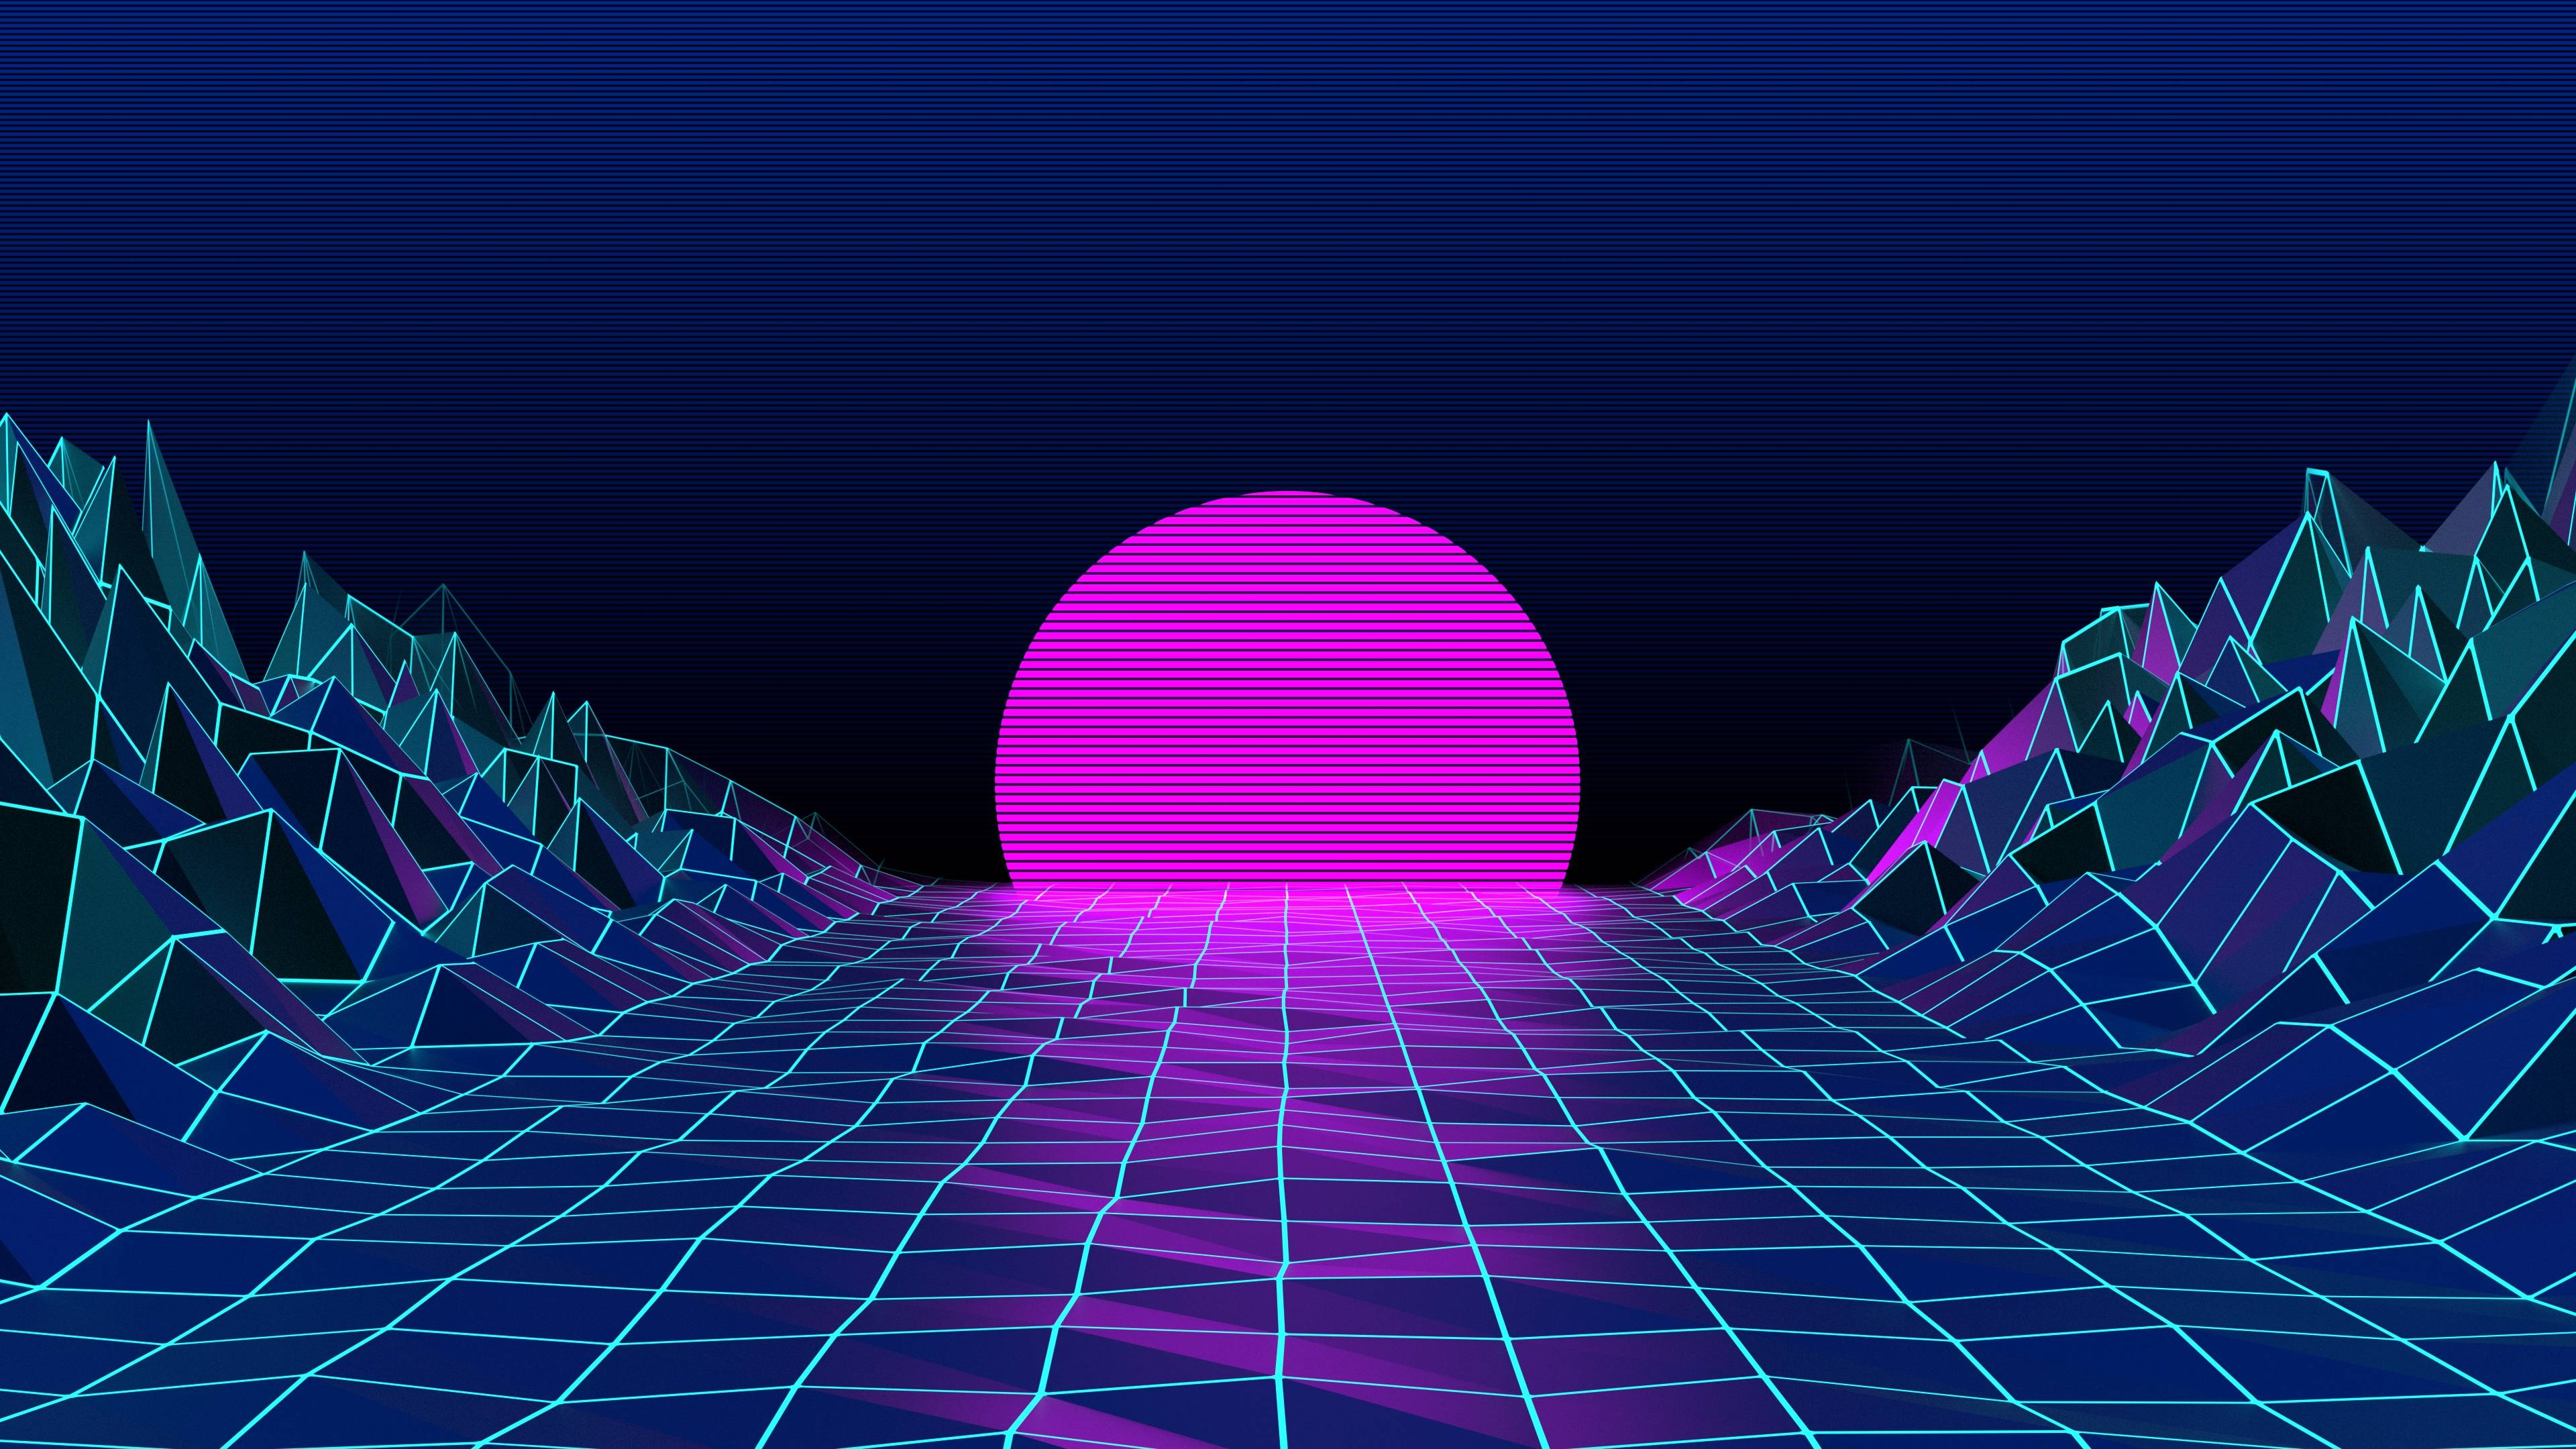 90s Aesthetic Computer Wallpapers   Top 90s Aesthetic 3840x2160